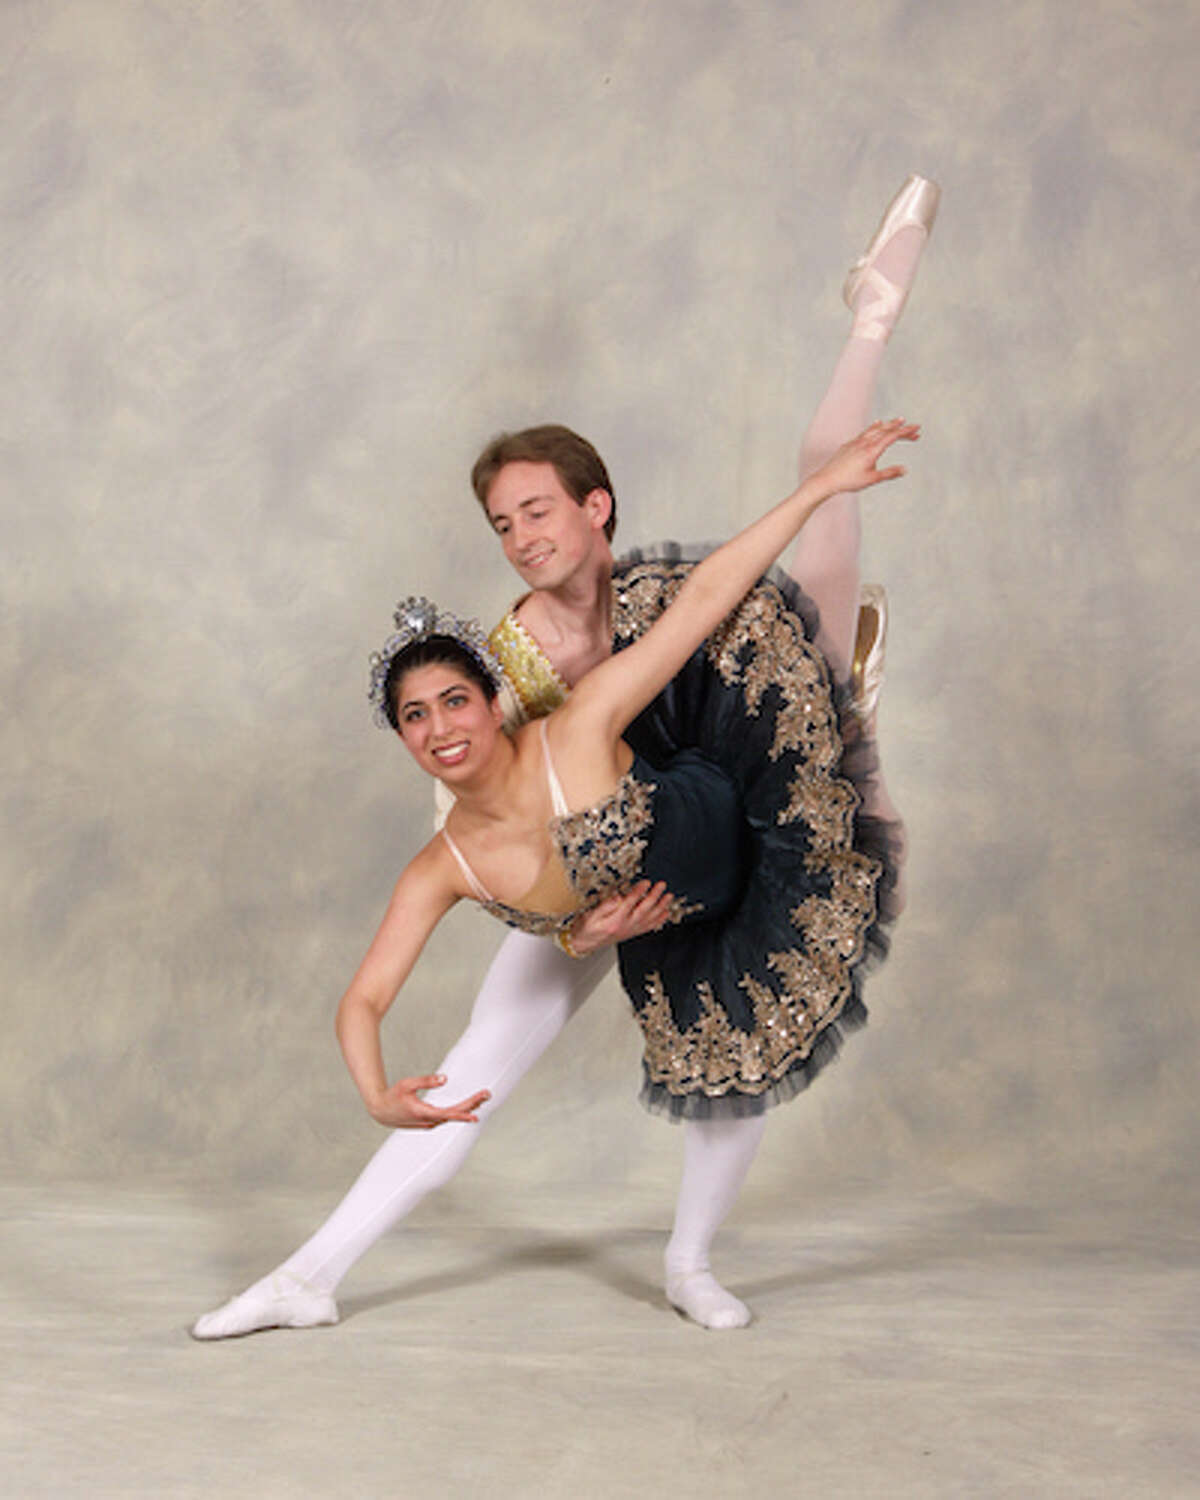 Wilton High School student Dilshad Dinshaw dances with Brian Froehlich.